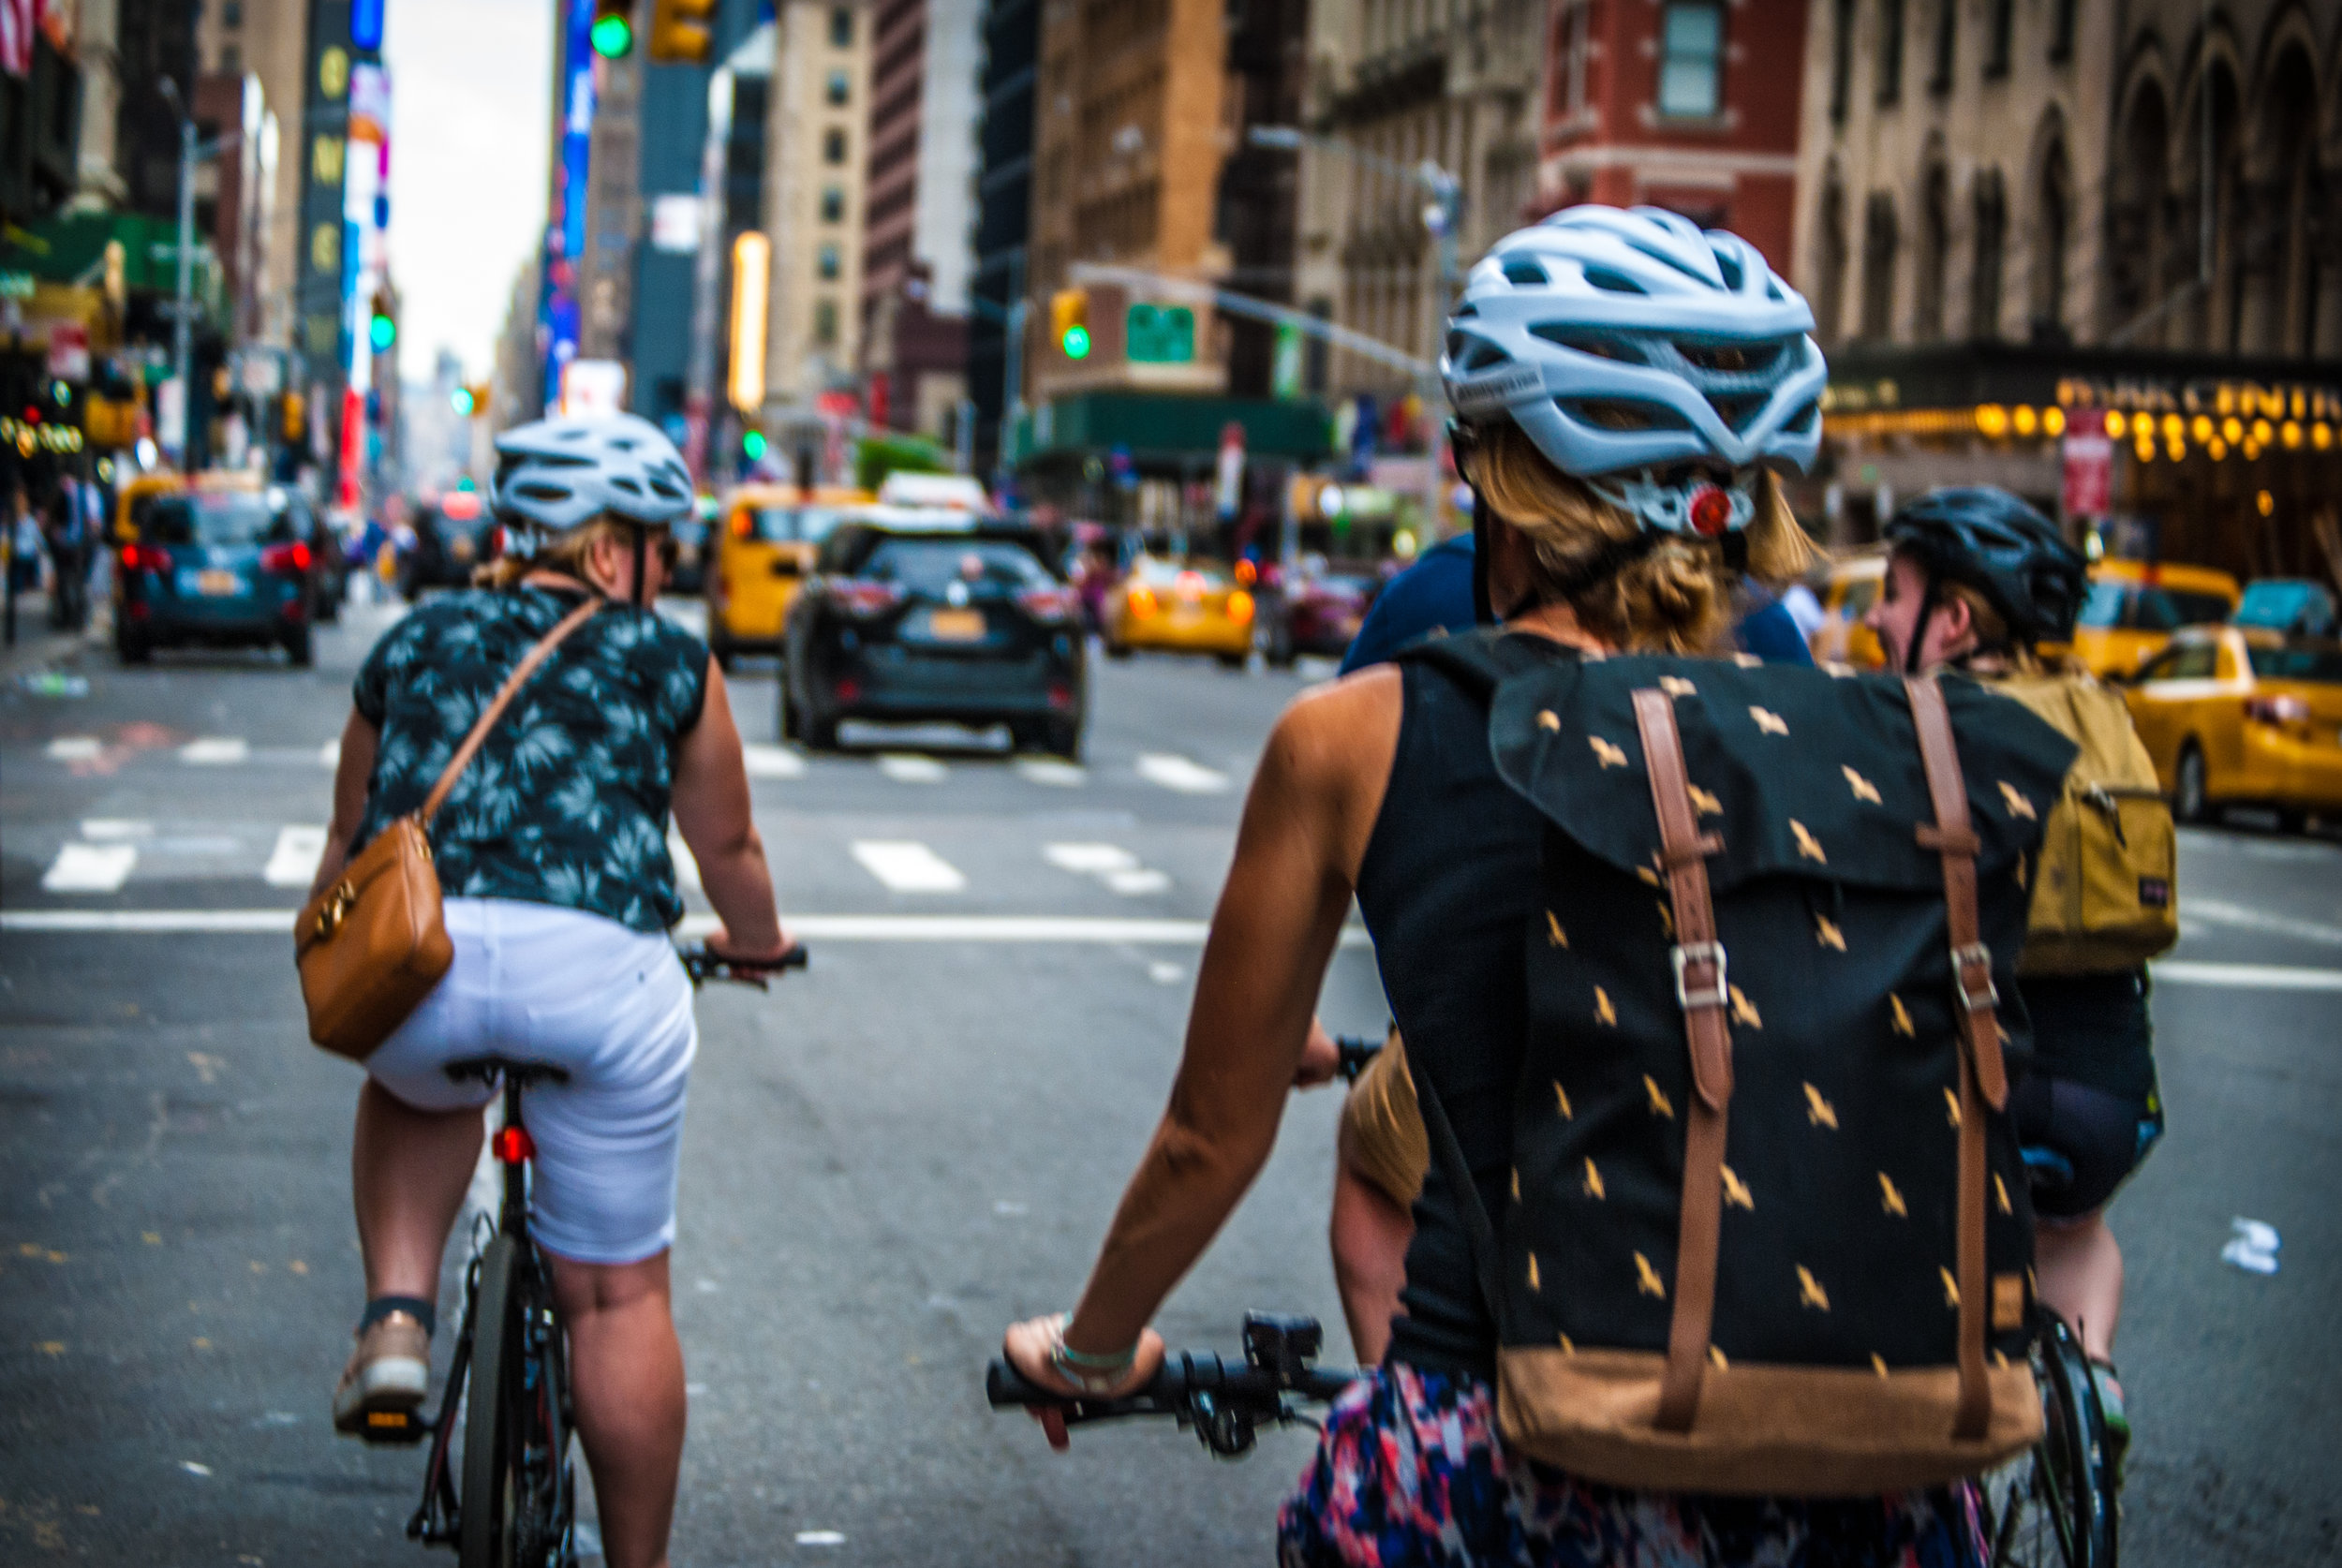 RIDE MORE - More routes & tour options than any other tour company- designed by local, avid cyclists.